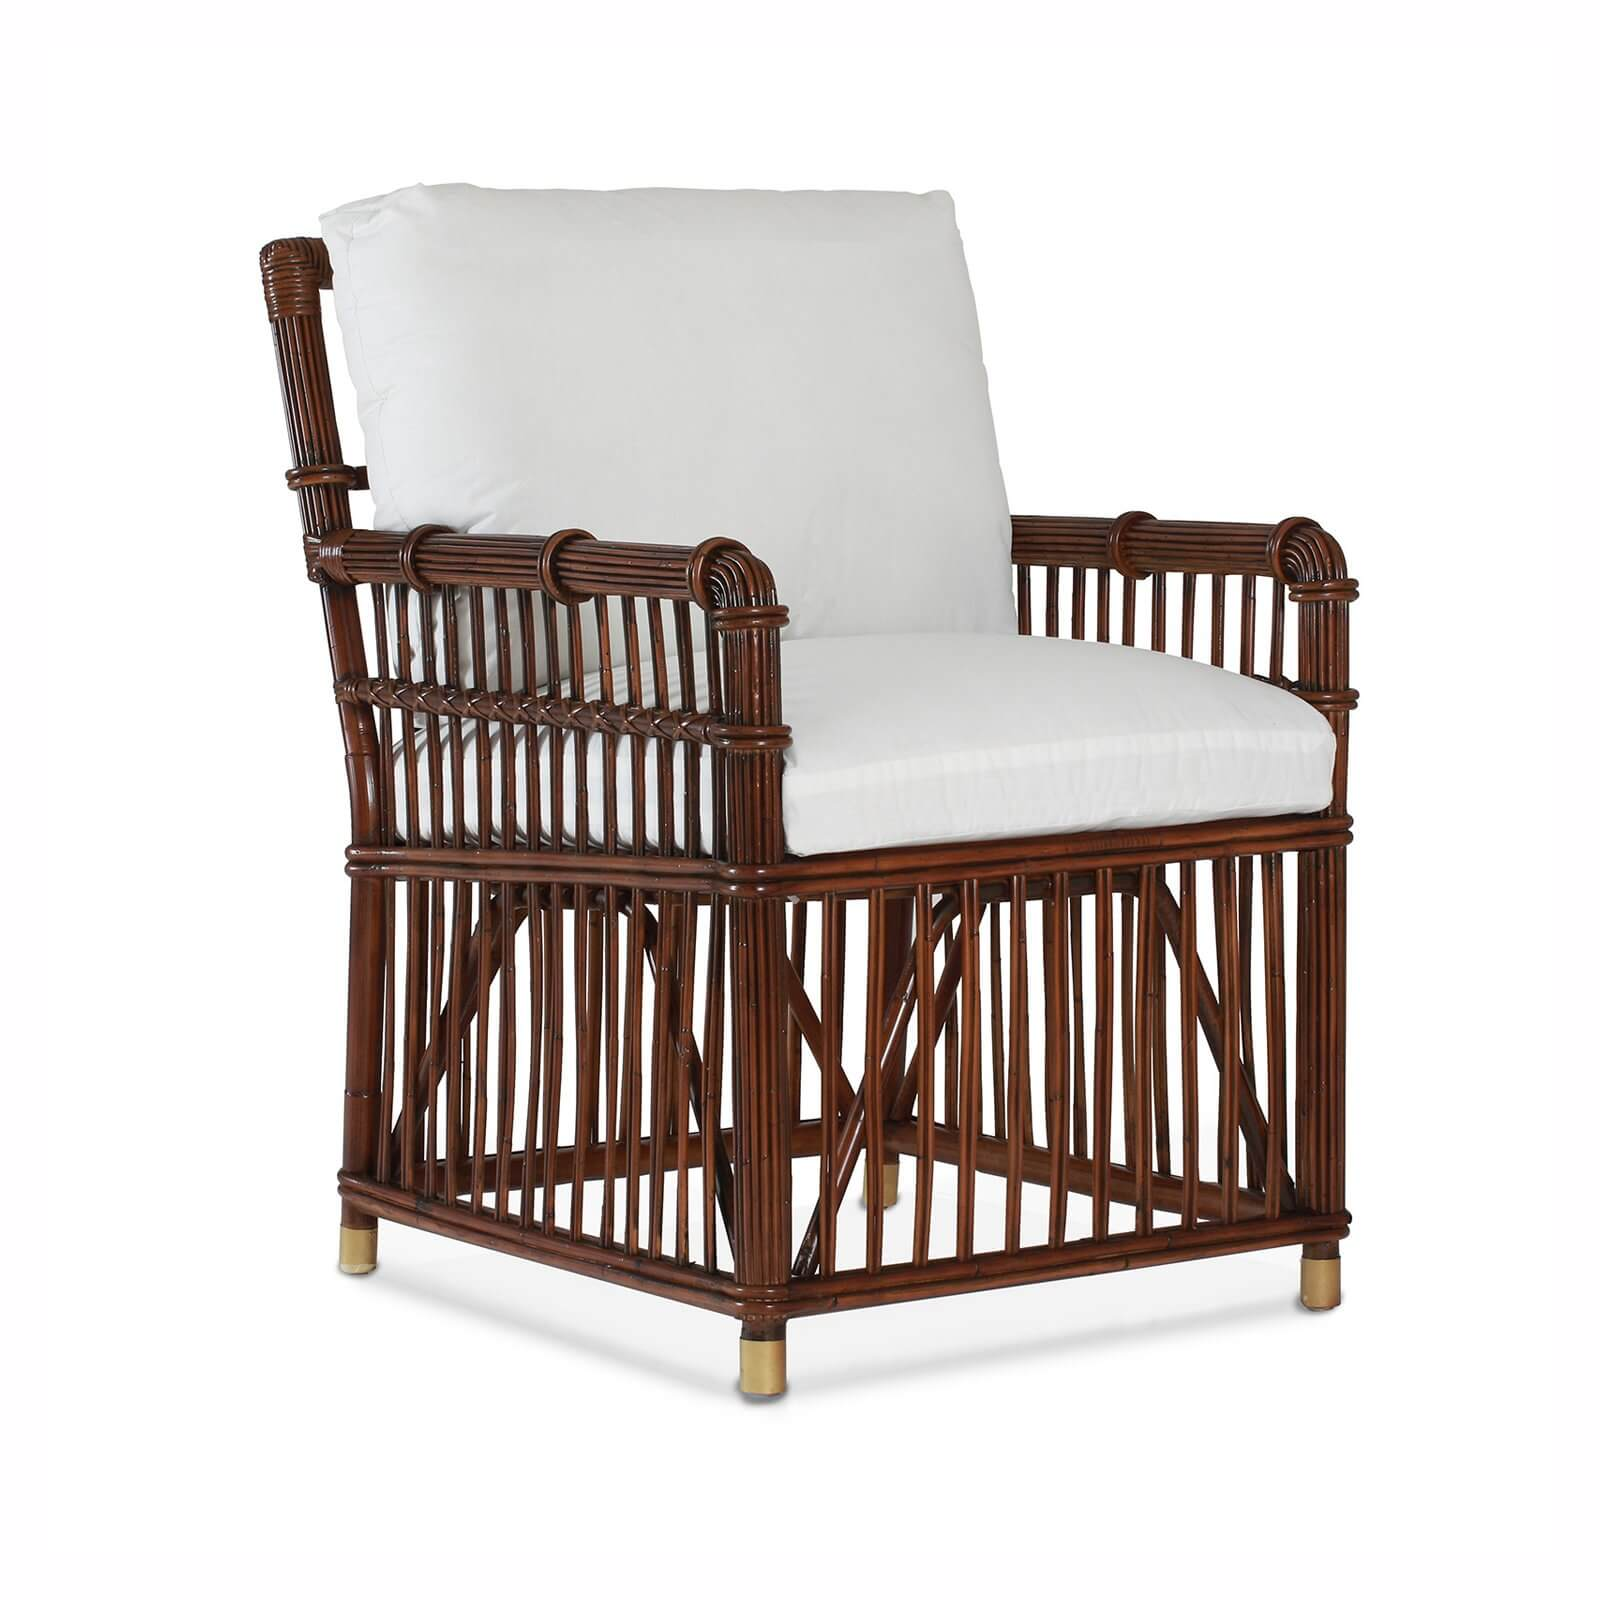 BUNGALOW DINING CHAIR - STUART MEMBERY HOME COLLECTION